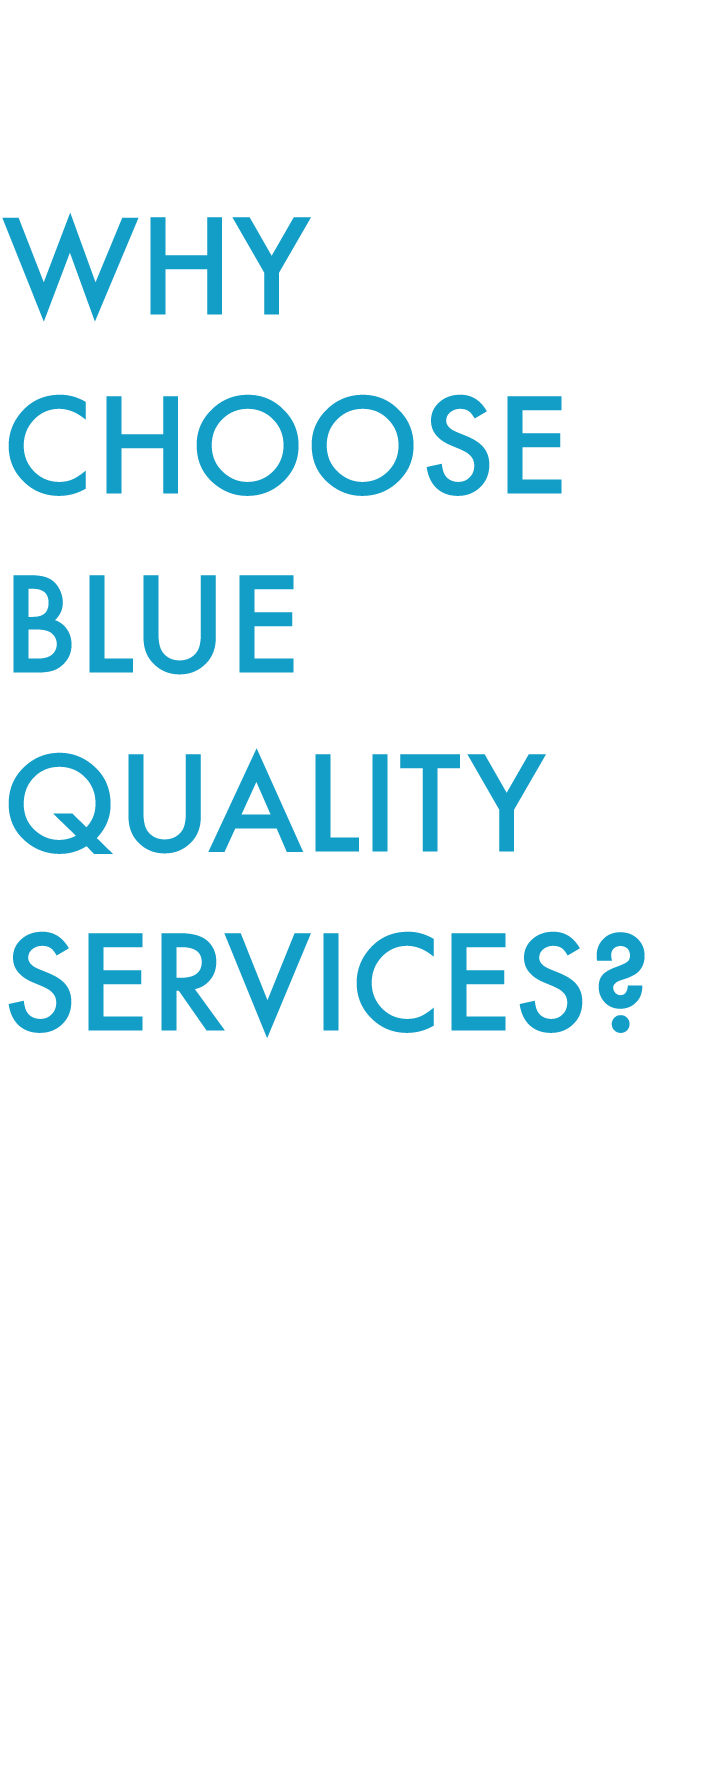 Why choose Blue Quality Services